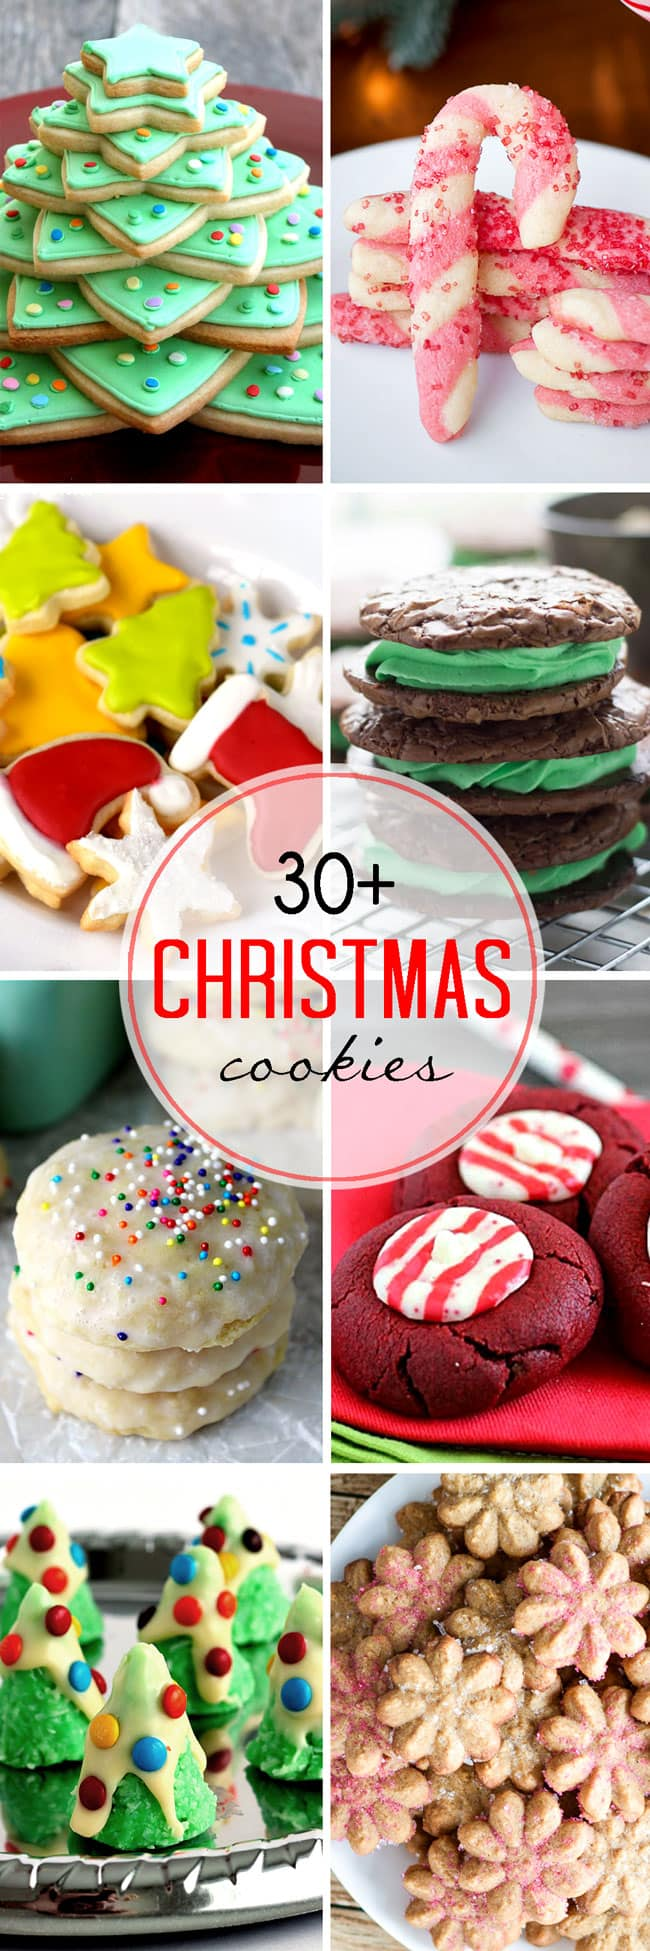 30+ of the Best Christmas Cookies